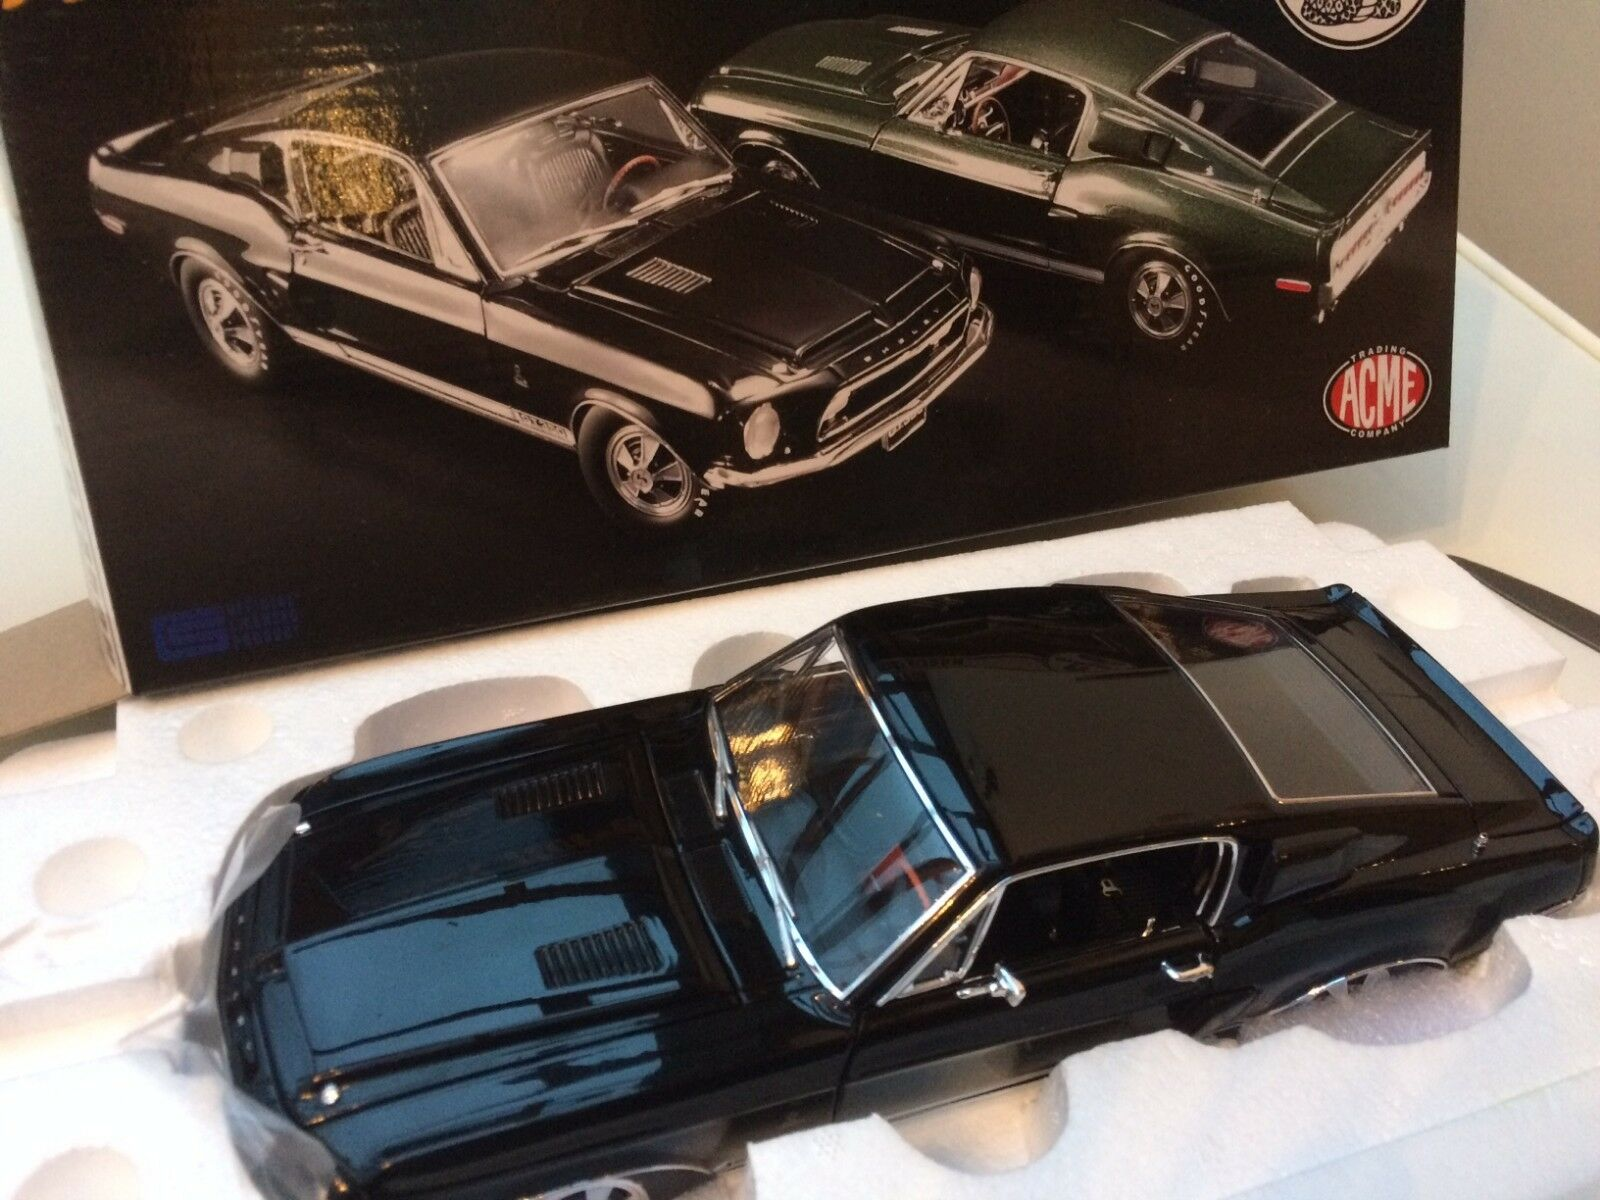 ACME 1801826 FORD MUSTANG SHELBY GT 350H HERTZ Modelll road car schwarz 1 18th scale